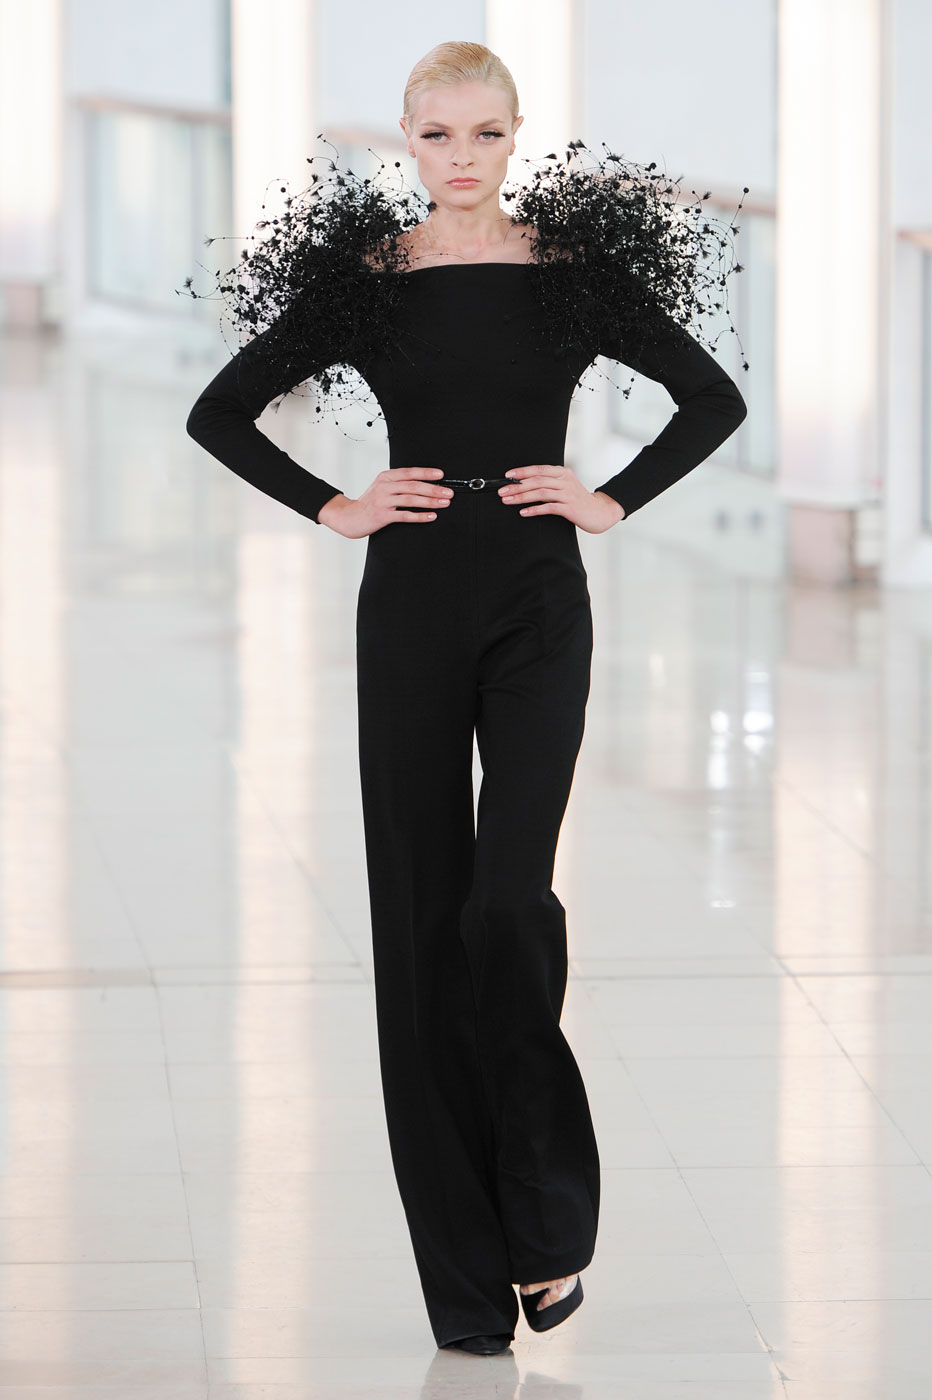 stephane-rolland-fashion-runway-show-haute-couture-paris-spring-2015-the-impression-09